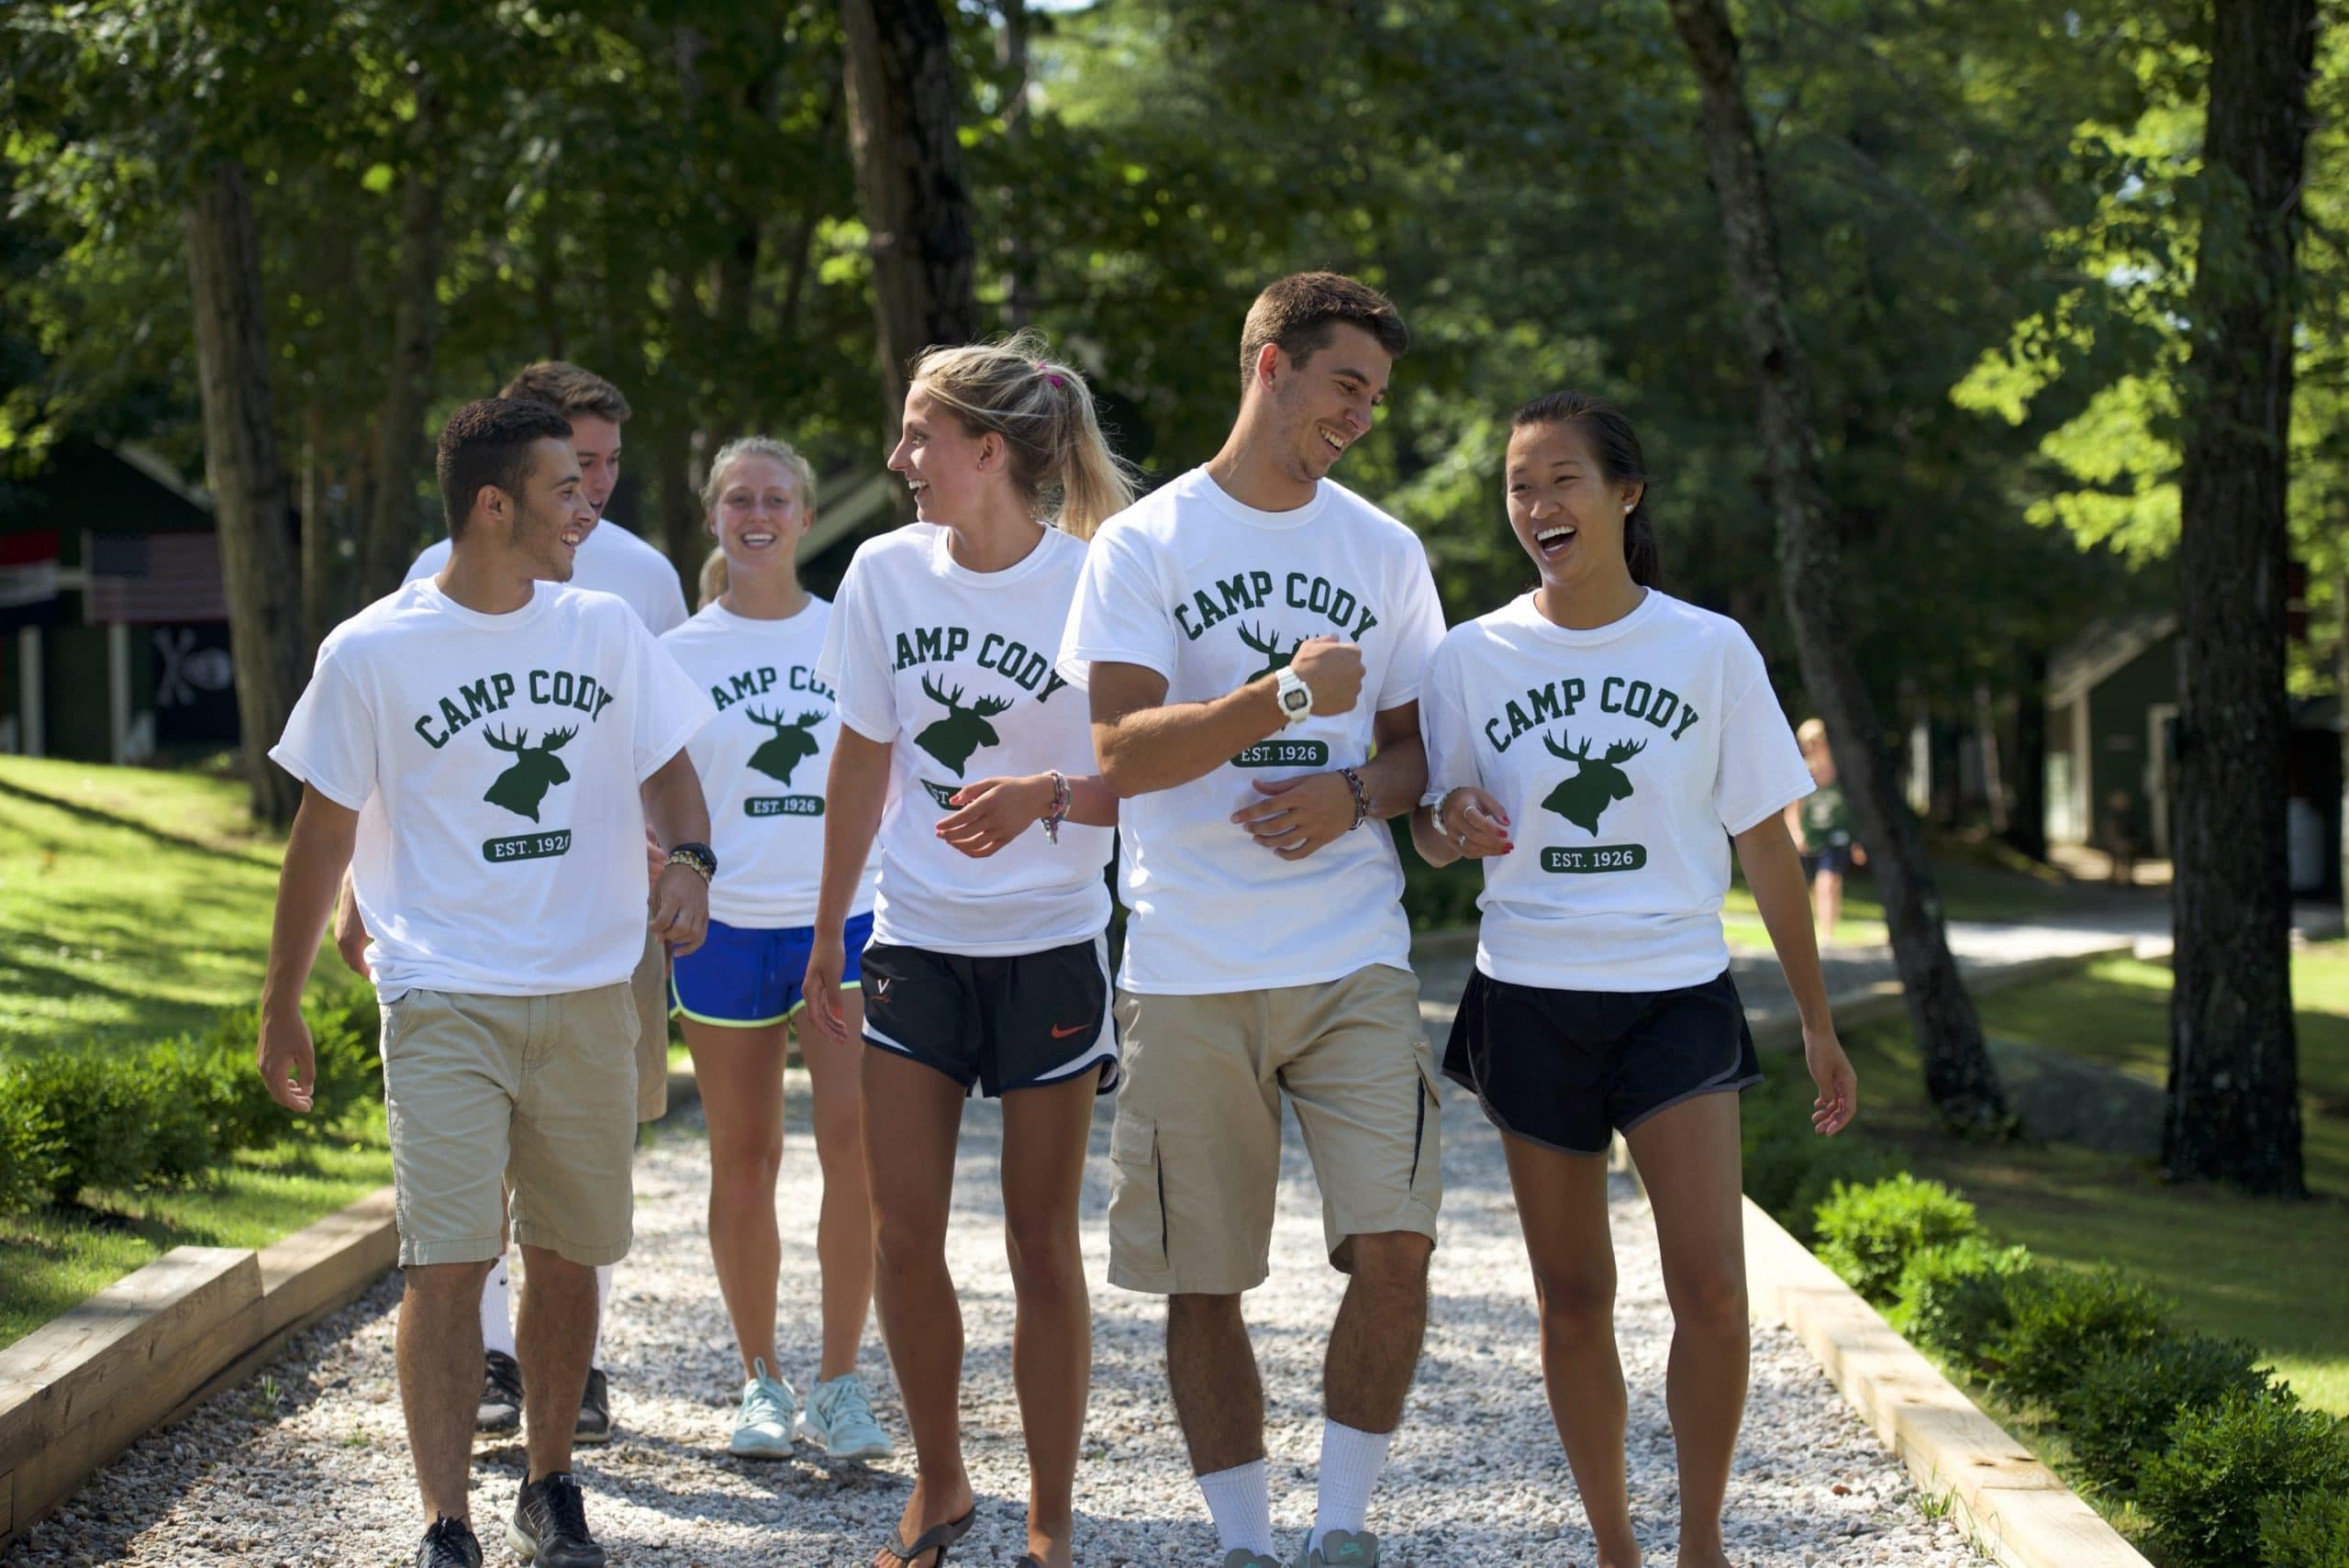 group of counselors walking together and smiling